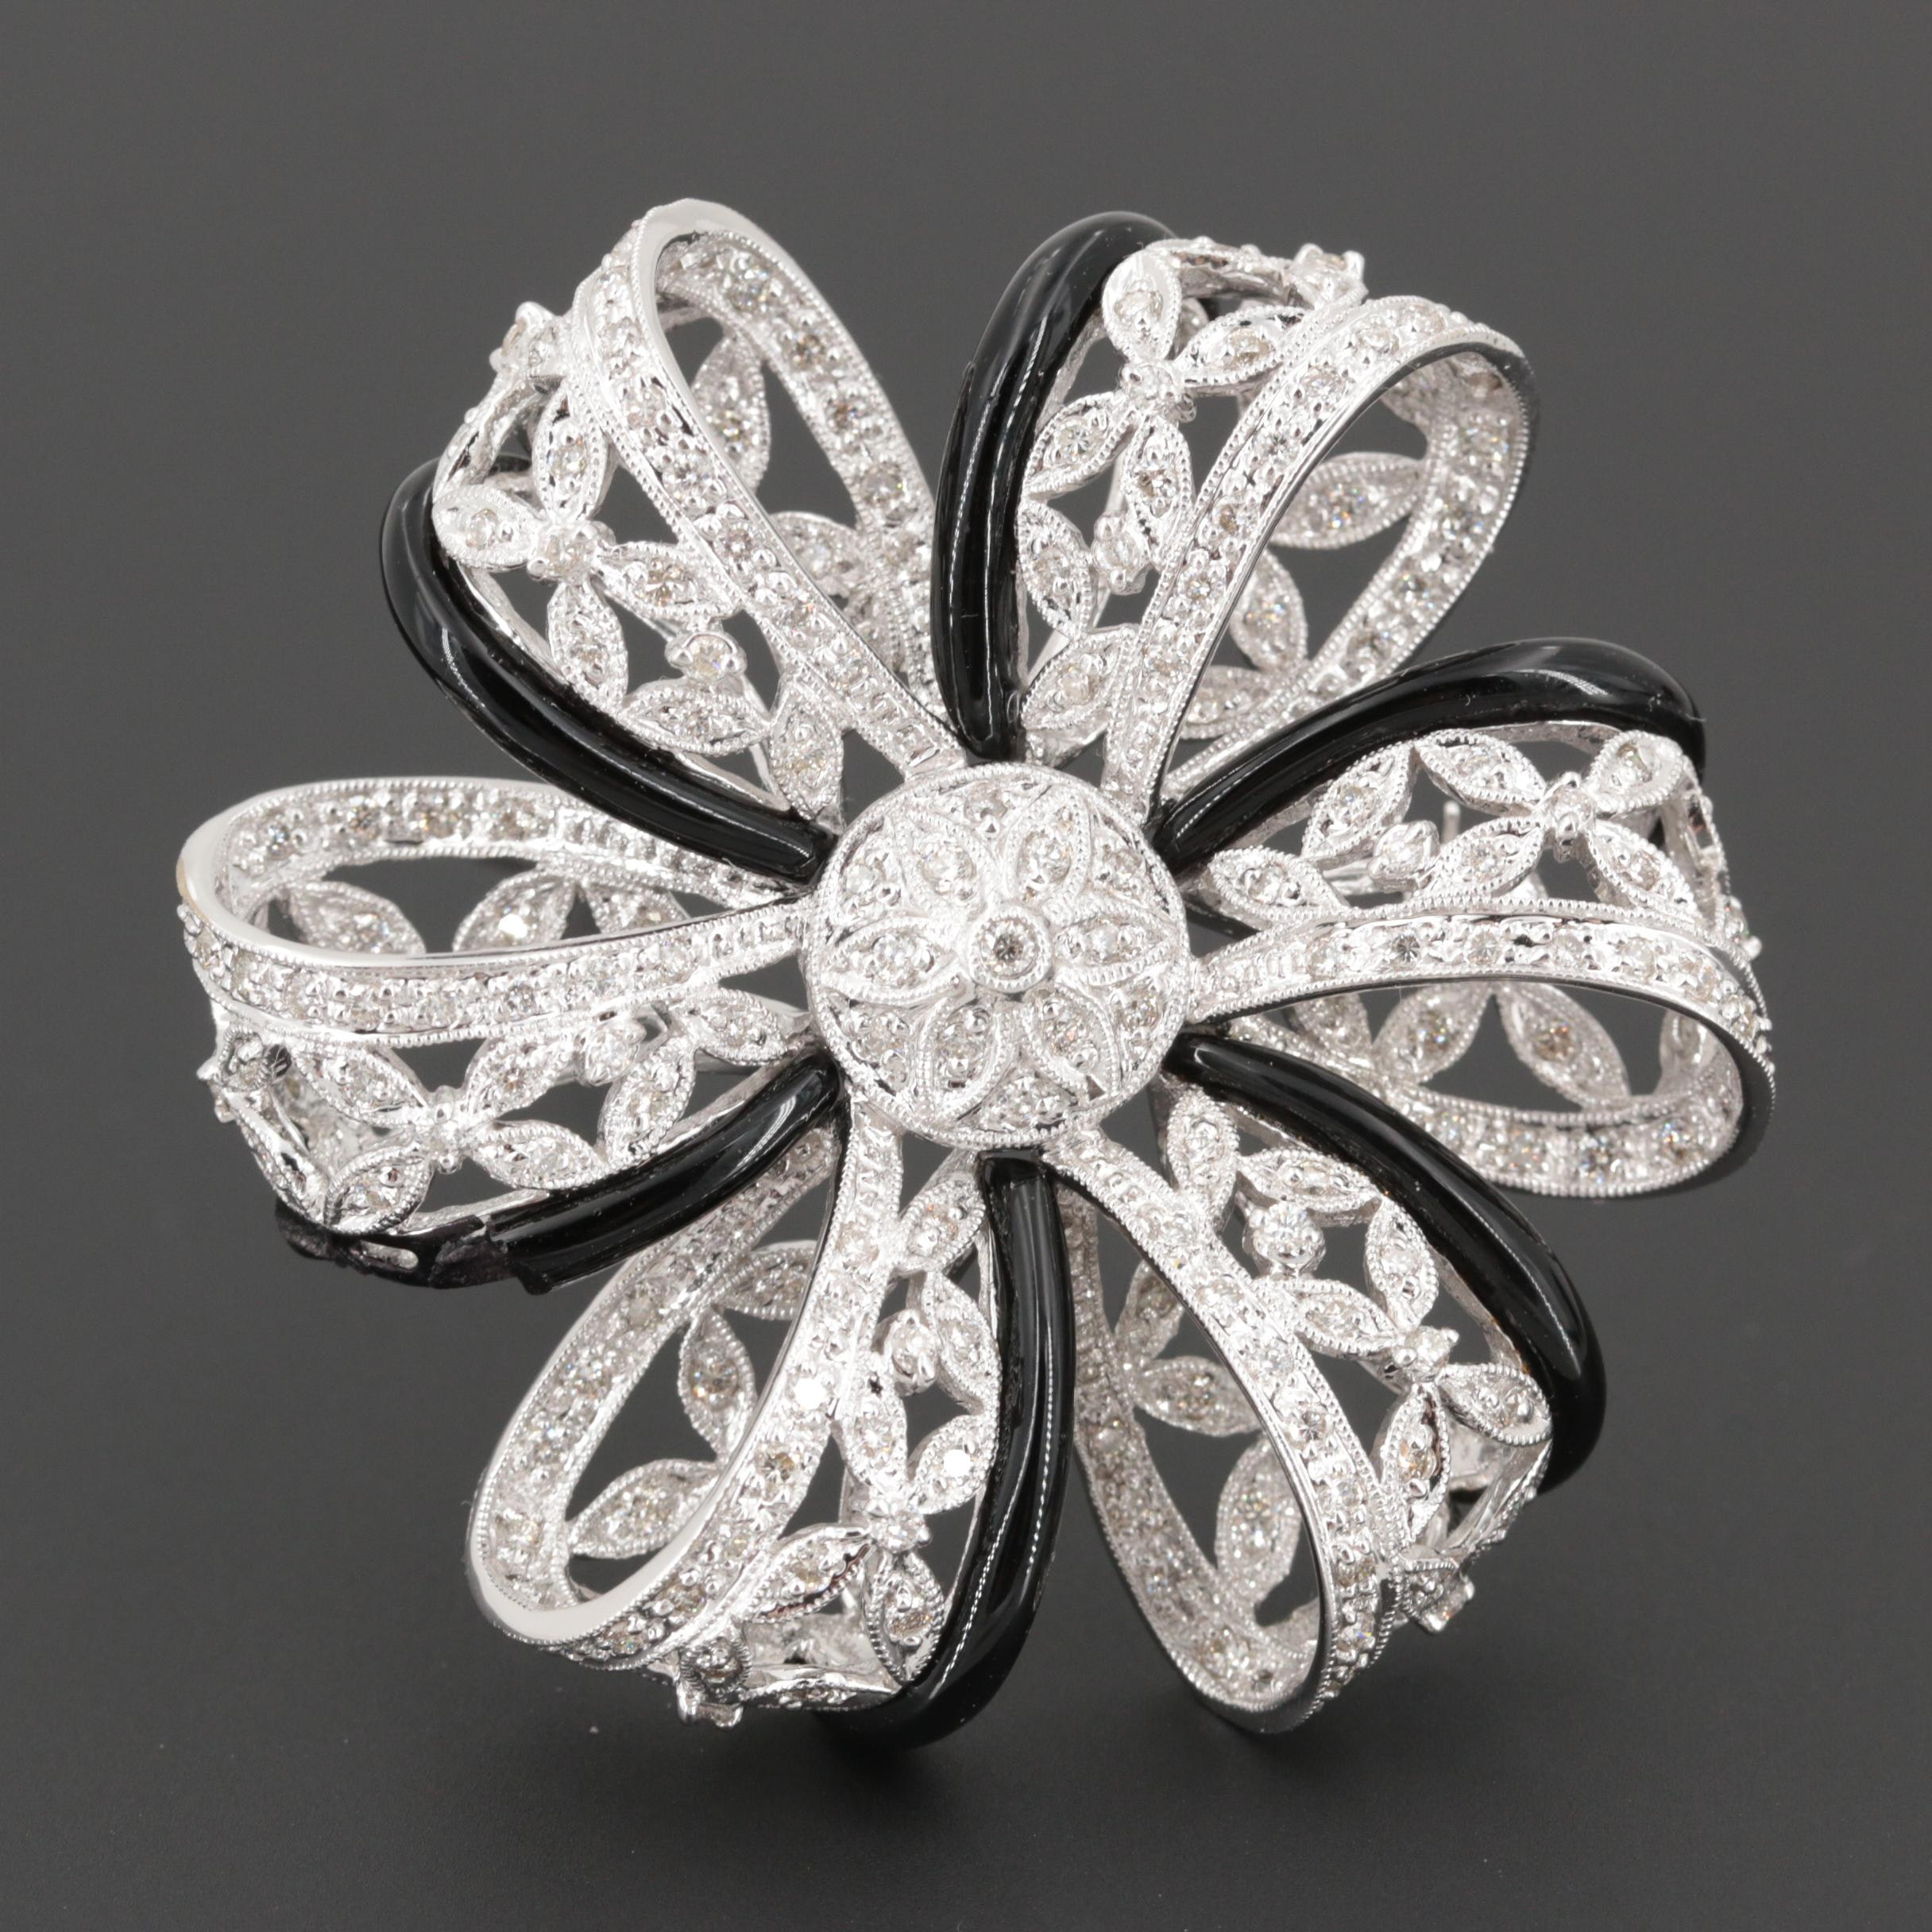 18K White Gold 2.03 CTW Diamond and Glass Brooch